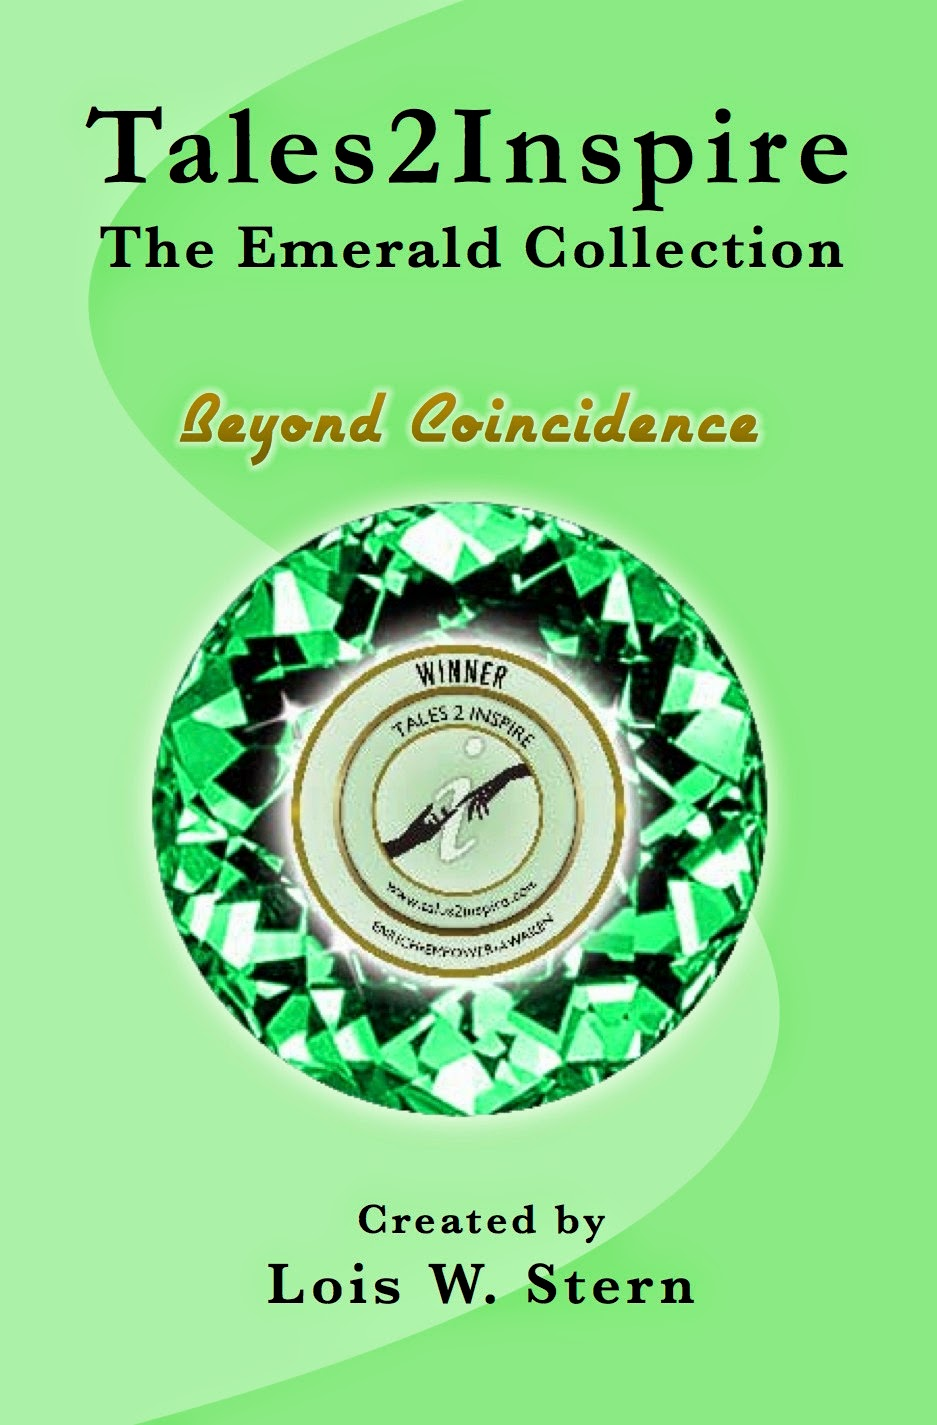 http://www.amazon.com/Tales2Inspire-Emerald-Collection-Beyond-Coincidence-ebook/dp/B00FW9PFUY/ref=la_B005HOO640_1_2?s=books&ie=UTF8&qid=1397241057&sr=1-2